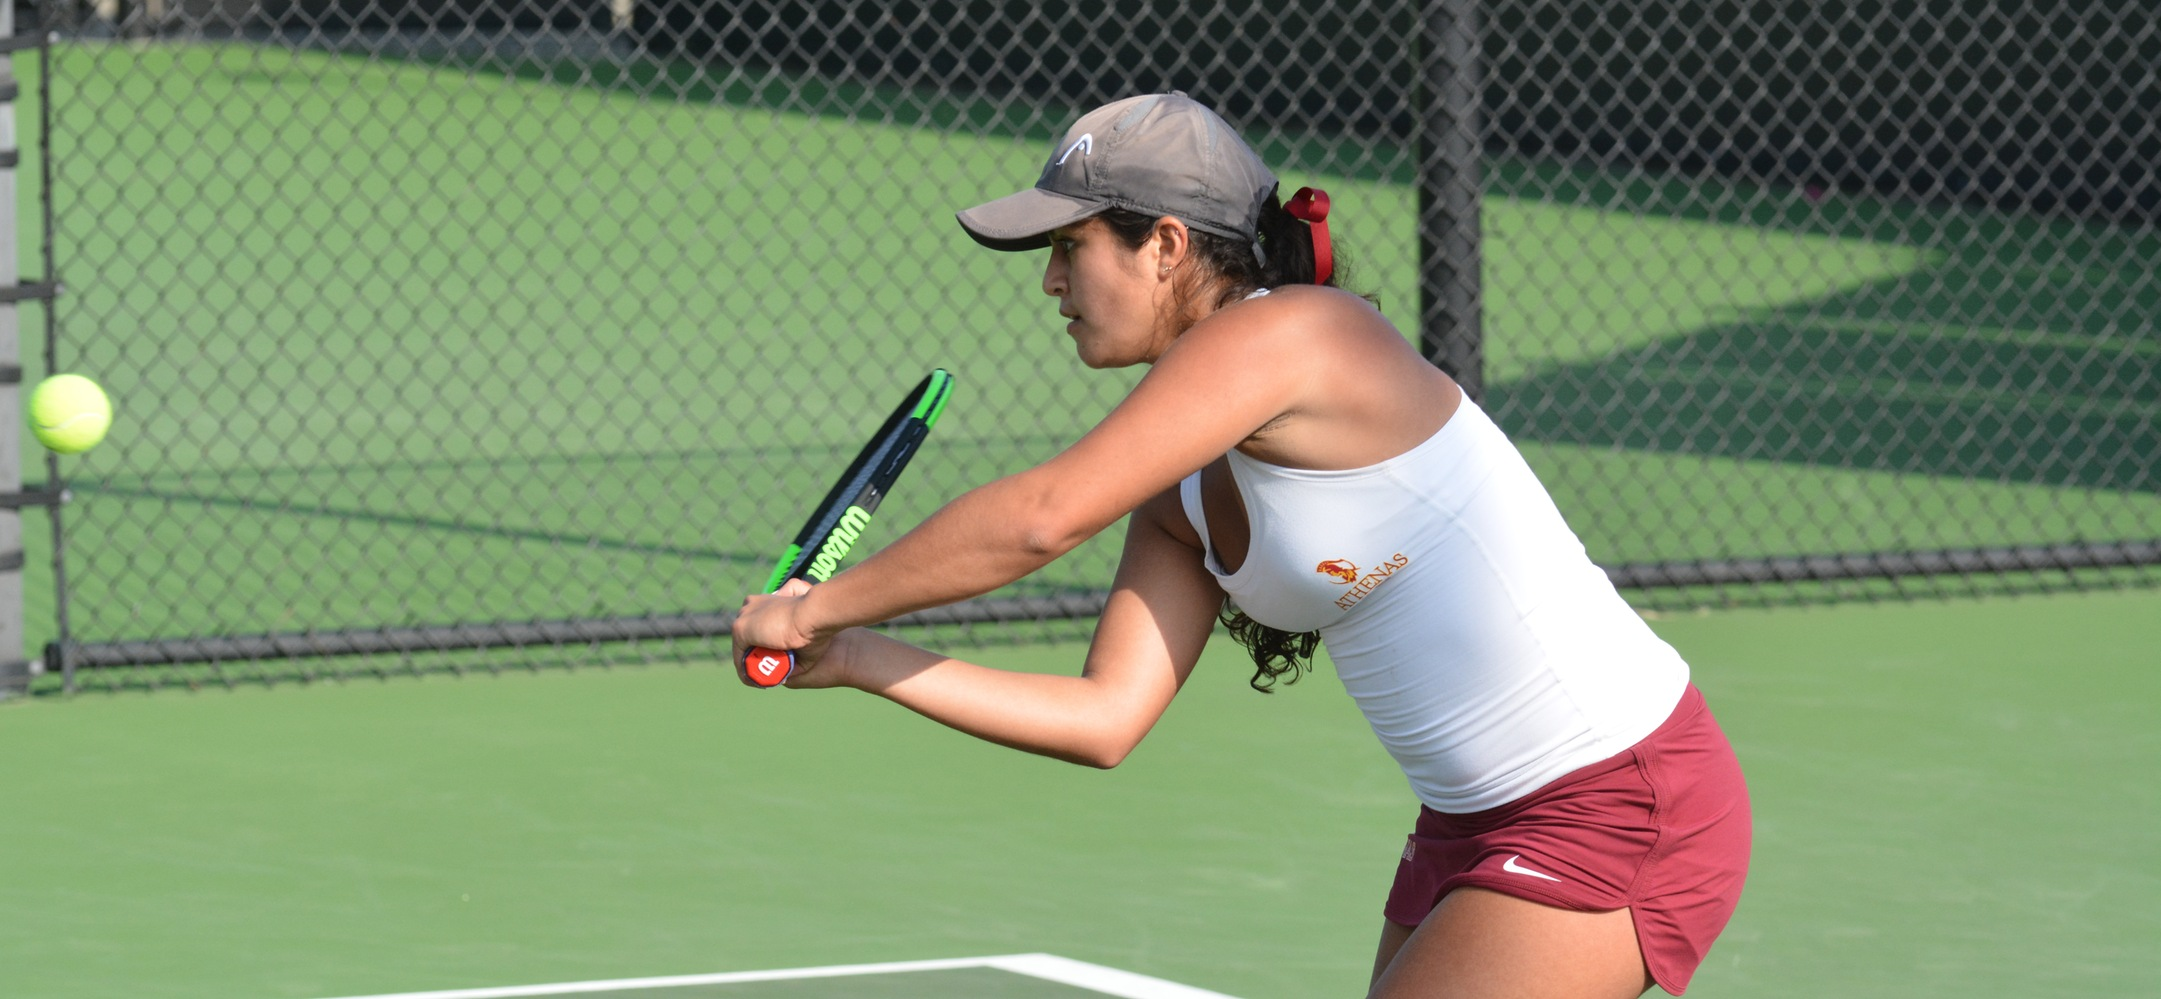 Sarah Bahsoun had the clinching win at No. 4 singles for the Athenas.